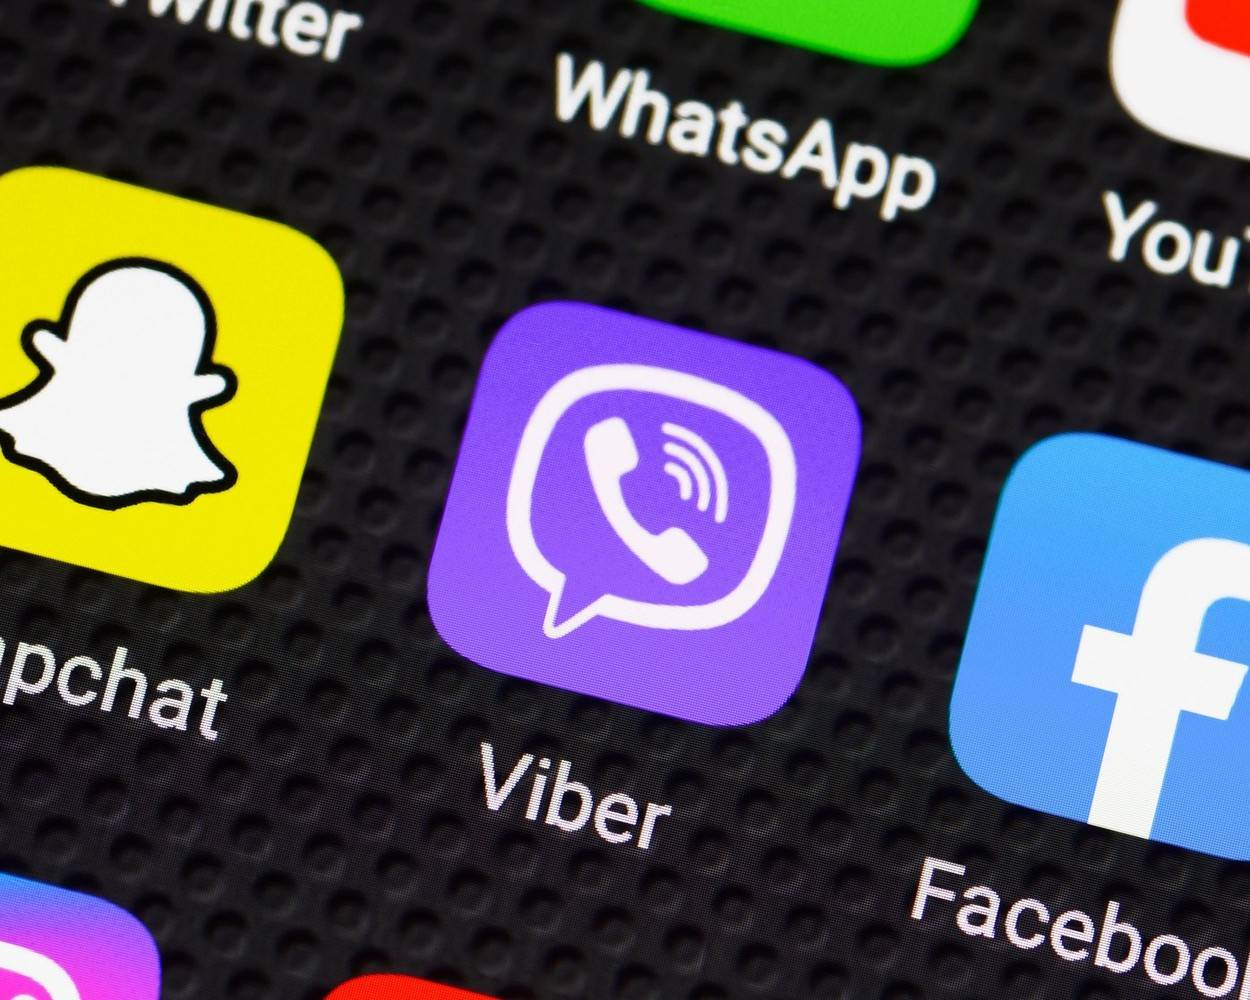 Viber;Viber Logo;Viber Icon;Viber App;Social Media;App;Apps;Icon;Logo;Application;Applications;Icons;Social Media App;Social Media Icons;Smartphone;Screen;Connectivity;Communication;Phone;Tablet;Mobile Phone;Connected;Communications;Concept;Social;Technology;Close Up;Black Background;Close-Up;Internet;Closeup;Nobody;No People;Horizontal;EDITORIAL_ONLY;alamyunknown